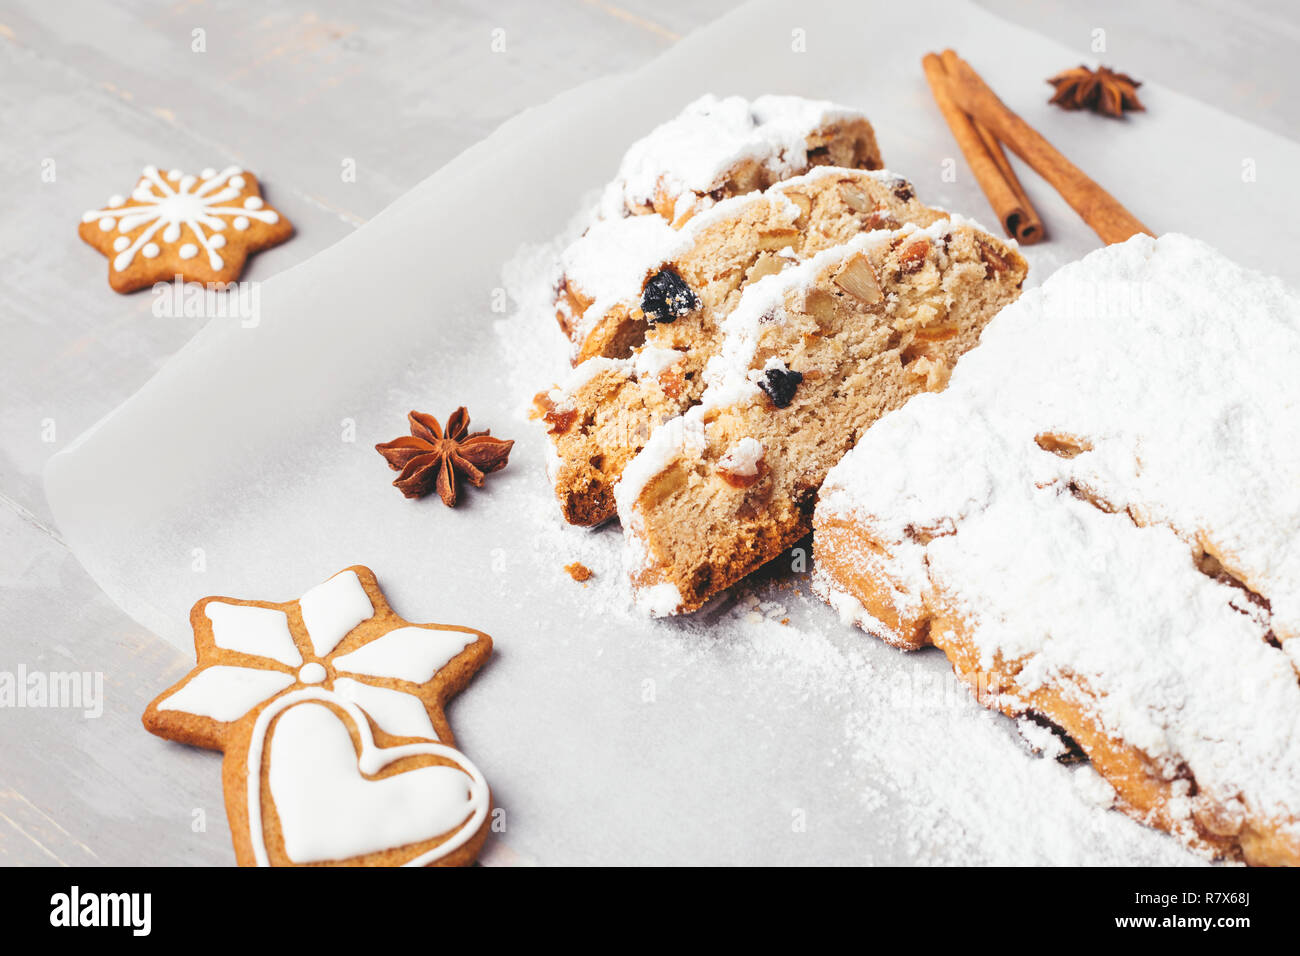 Traditional Christmas stollen with gingerbread, cinnamon, anise stars on grey wooden table. Shot at angle. - Stock Image